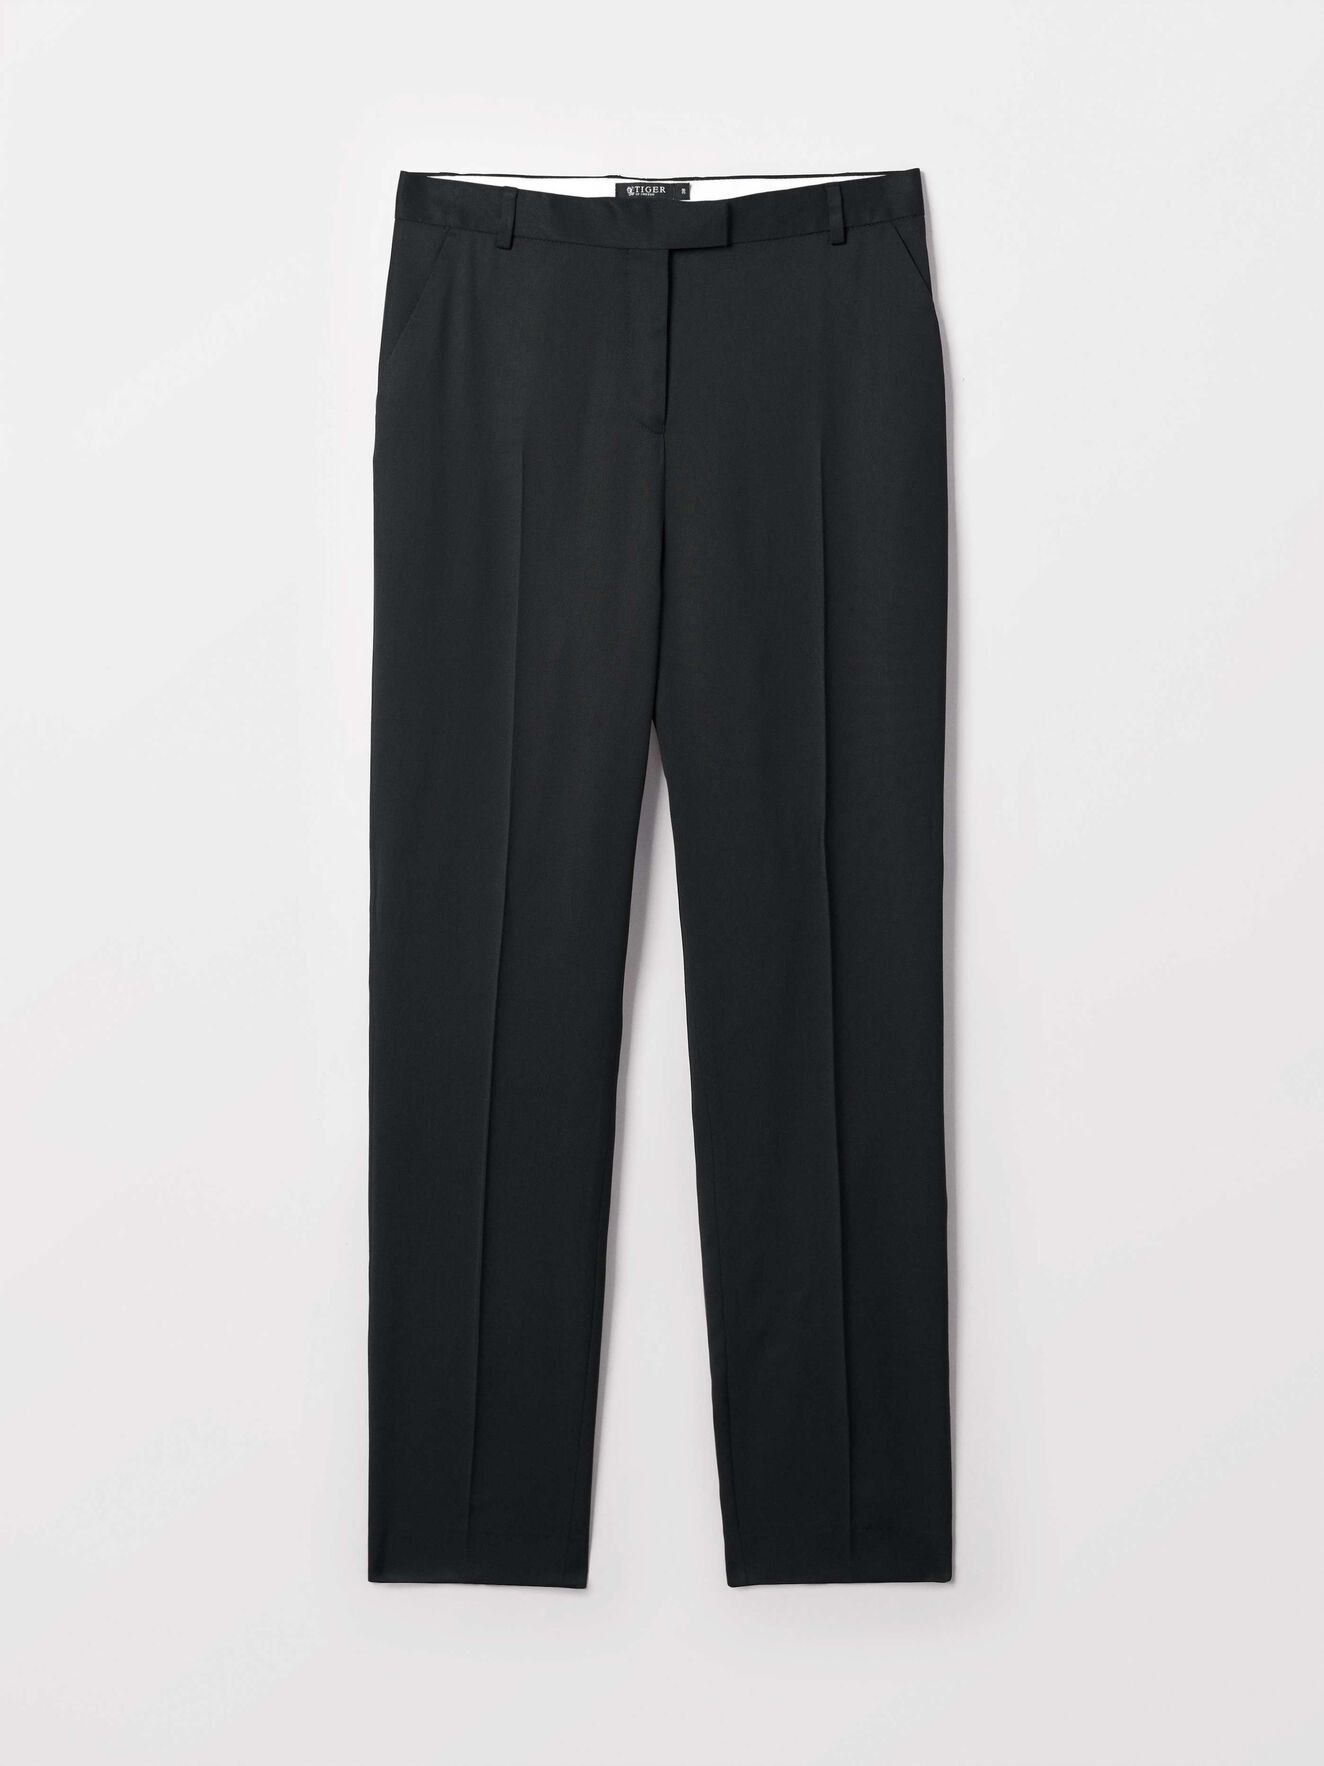 Pantalon Loanella in Midnight Black from Tiger of Sweden